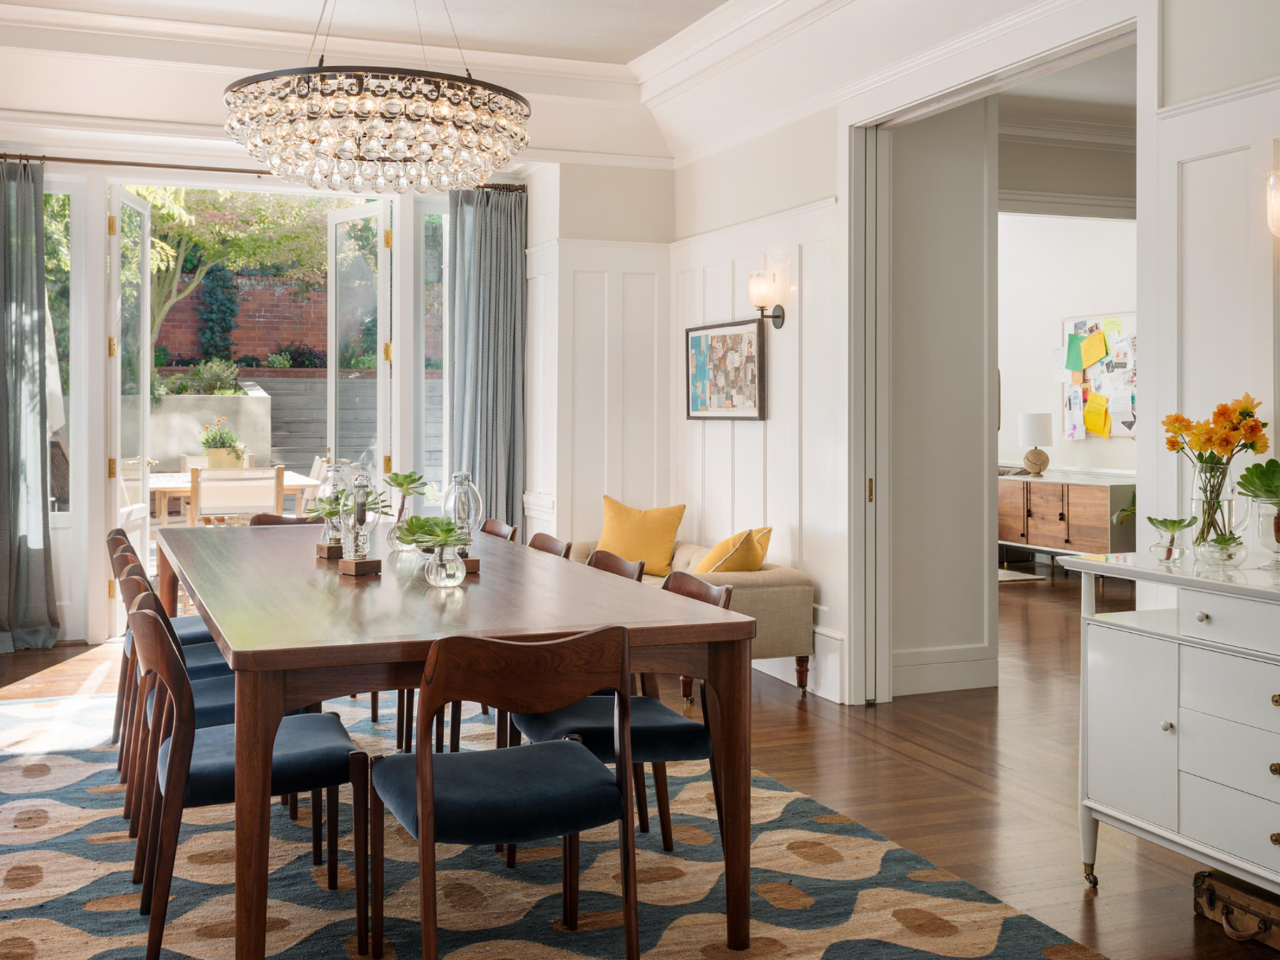 Home improvement goals for 2013 pt 2 for Small dining room ideas houzz